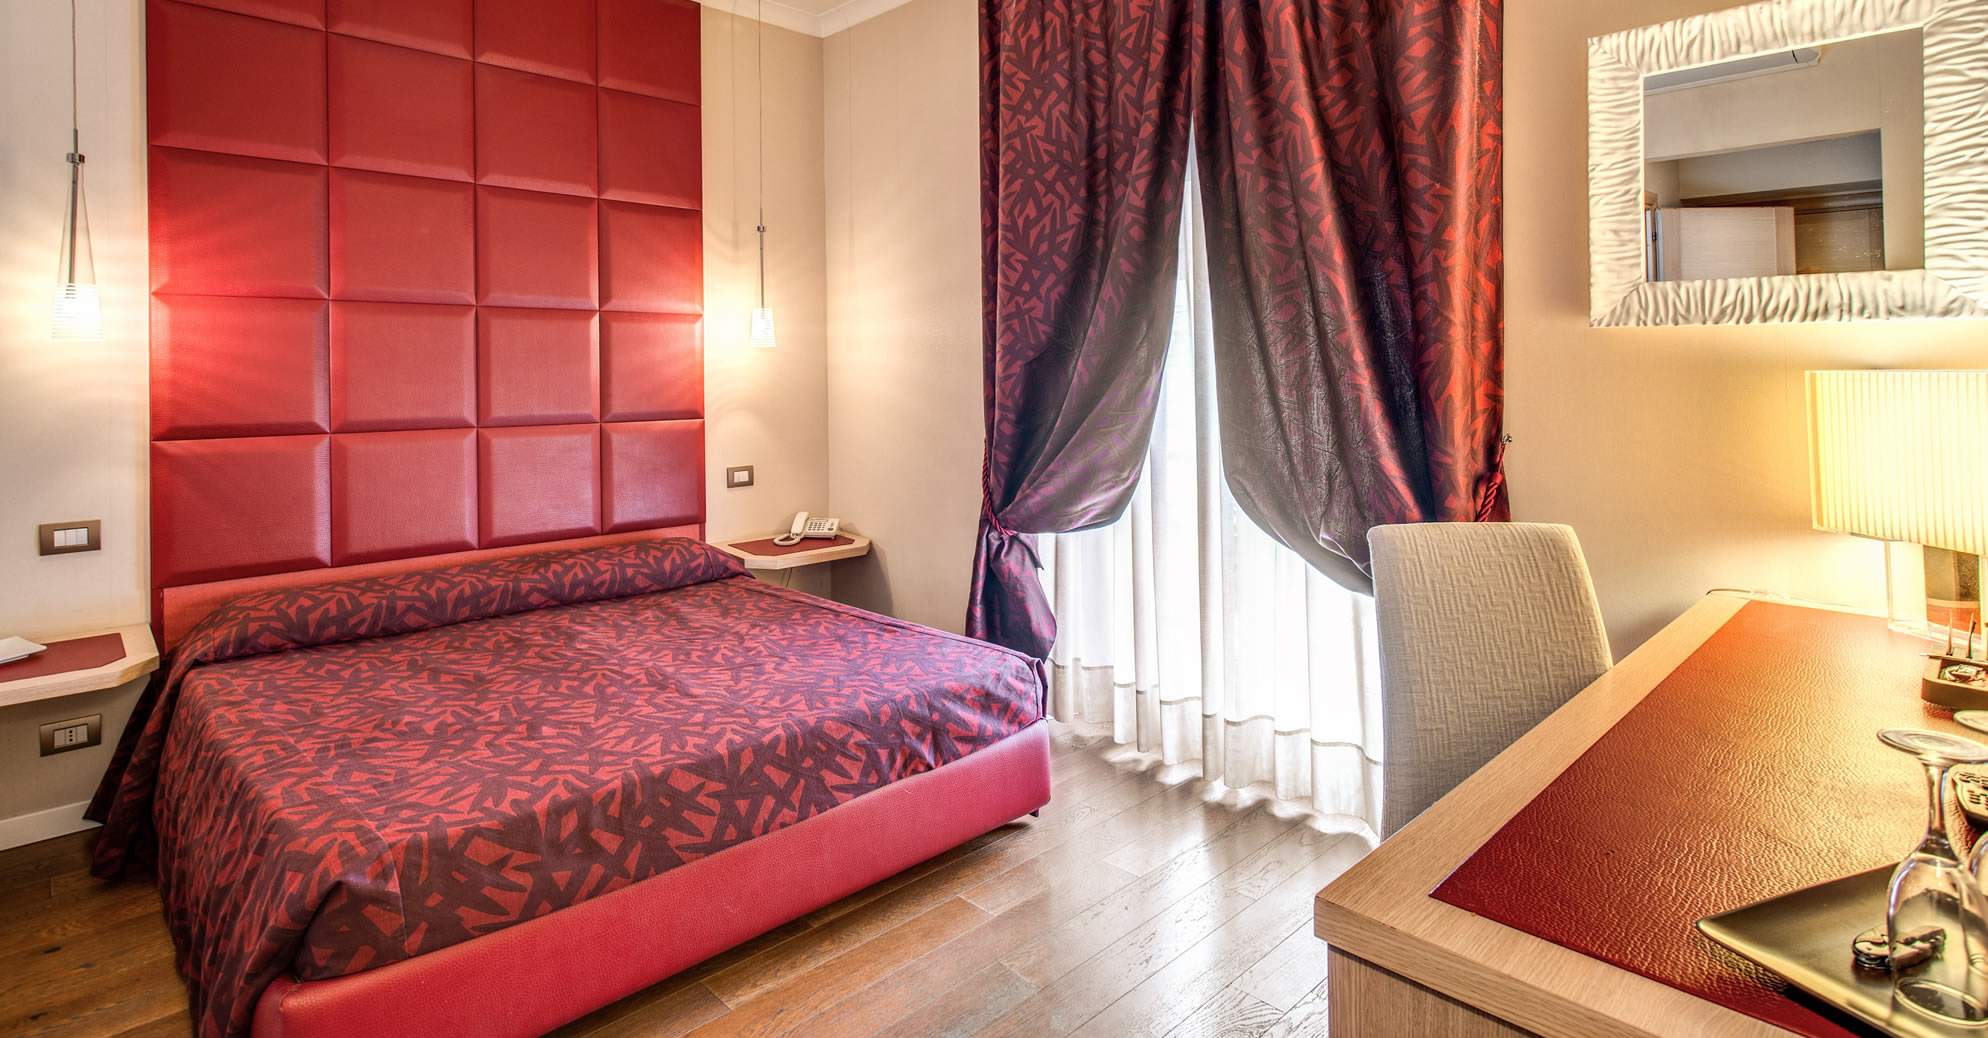 Boutique guesthouse roma official site four star city for Boutique hotel definizione